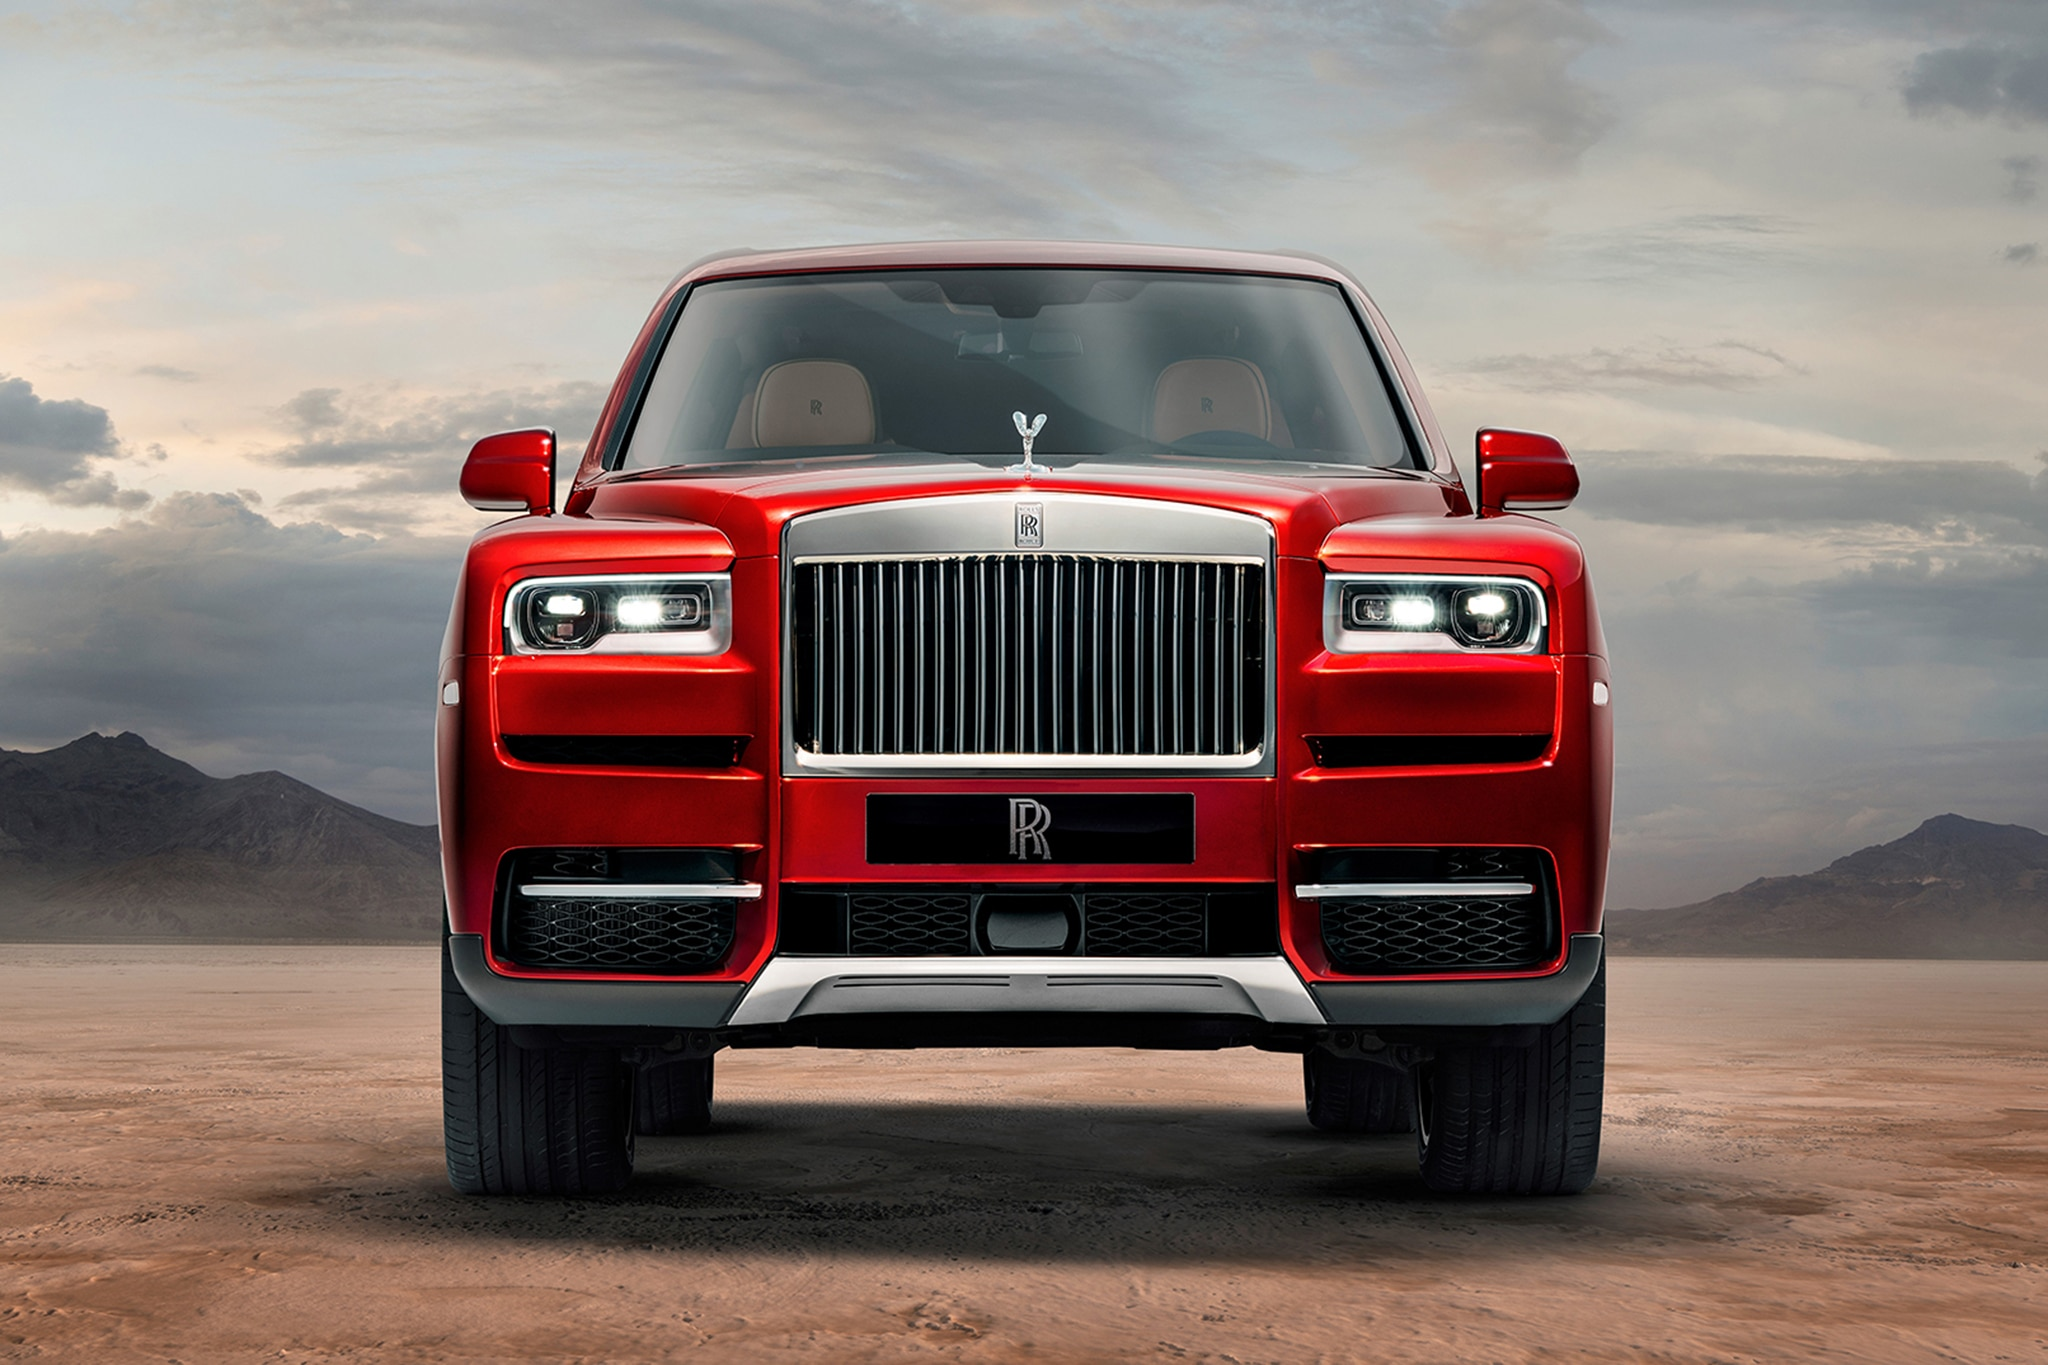 By Design Rolls Royce Cullinan 7